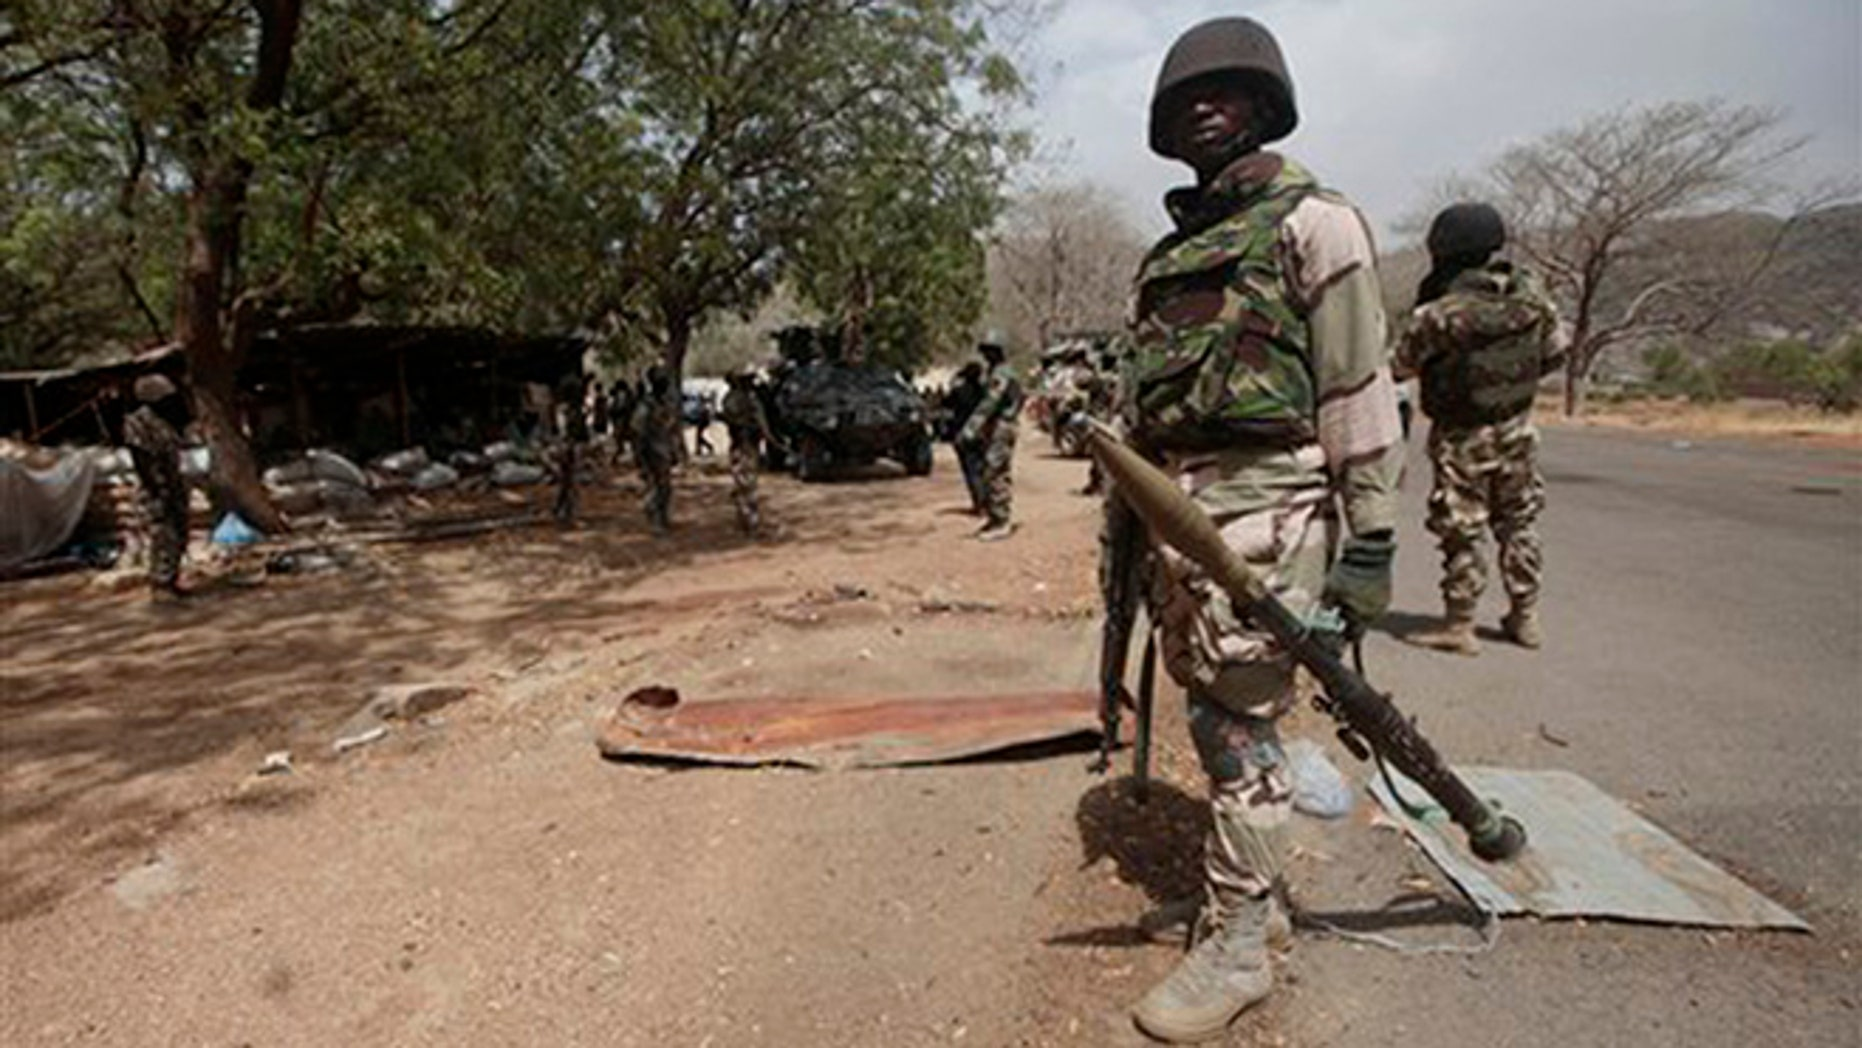 In this 2015 file photo, Nigerian Soldiers man a check point in Gwoza, Nigeria, a town newly liberated from Boko Haram. Nigeria's military says it is moving 200 girls and 93 women from a northeastern forest where they were rescued from Boko Haram extremists.